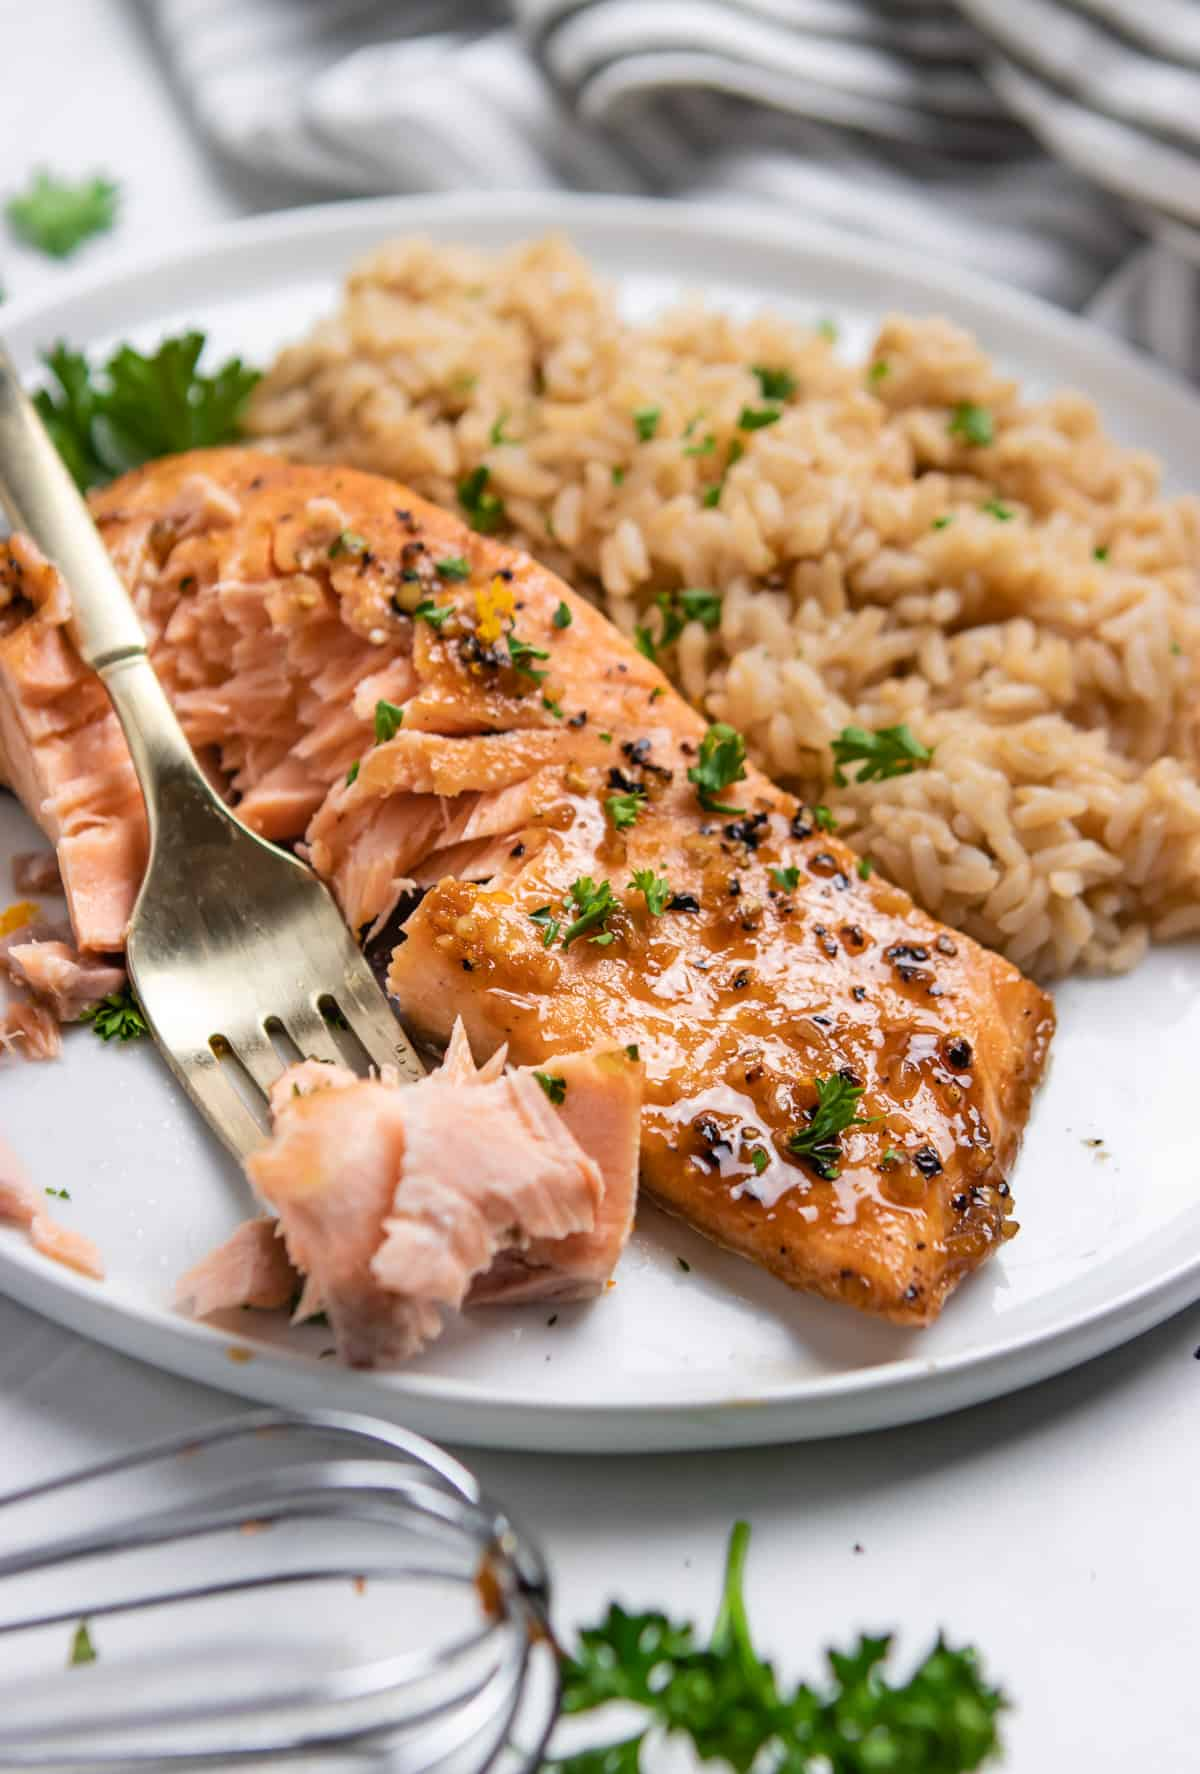 Salmon on plate with flaked salmon on fork.